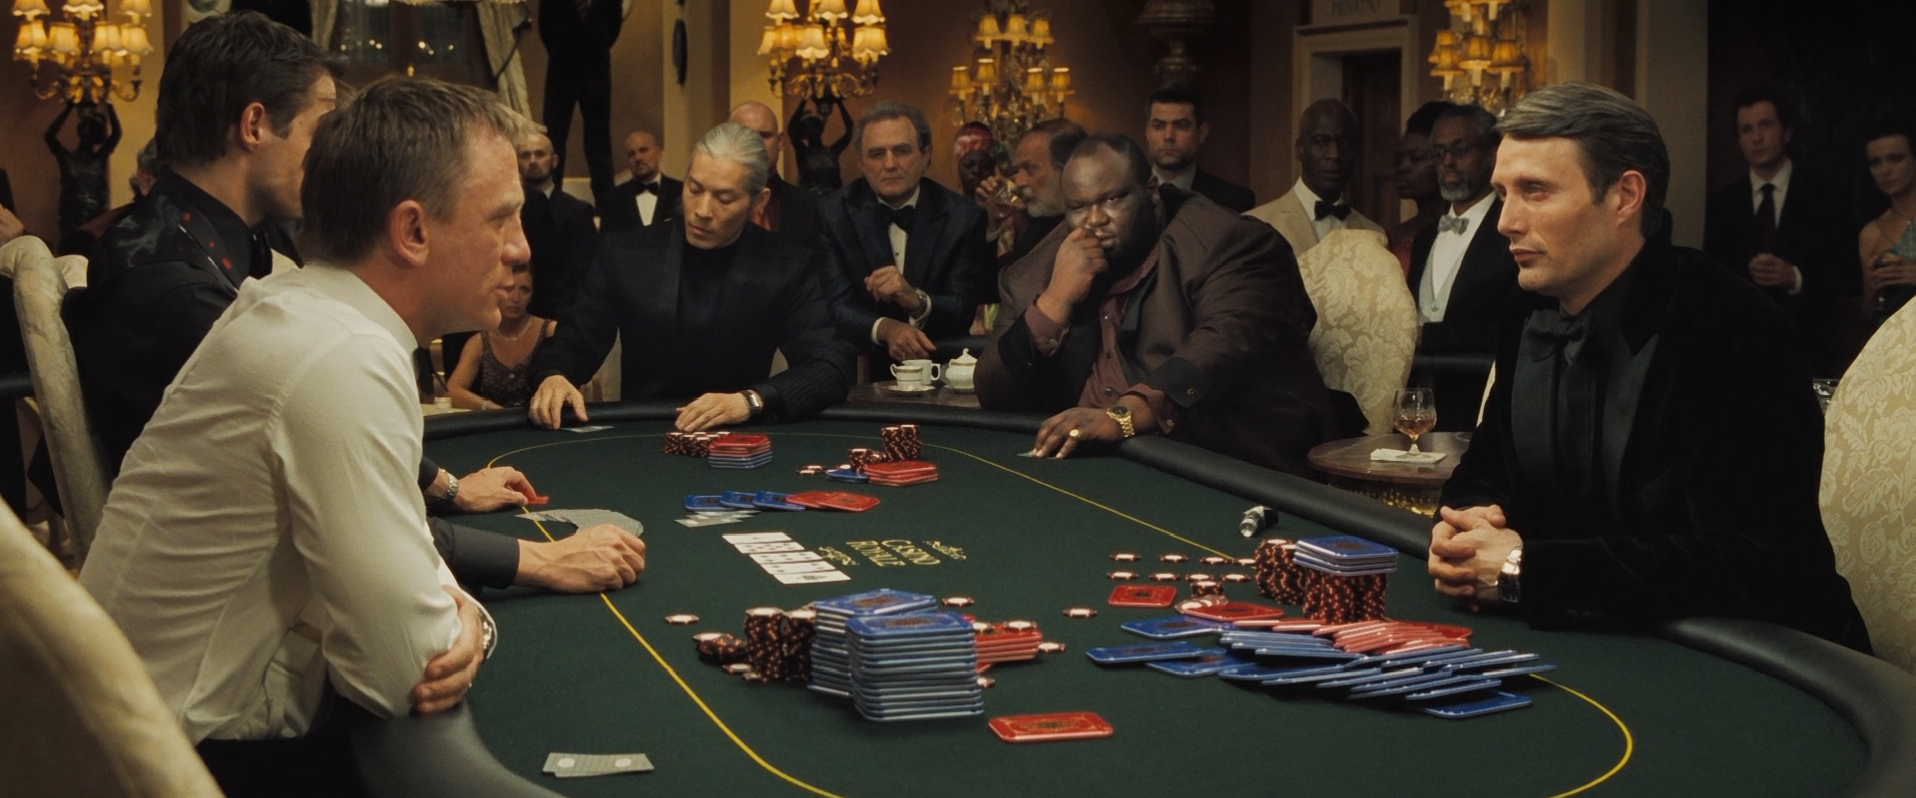 Casino royale poker youtube poker hands ranking best to worst